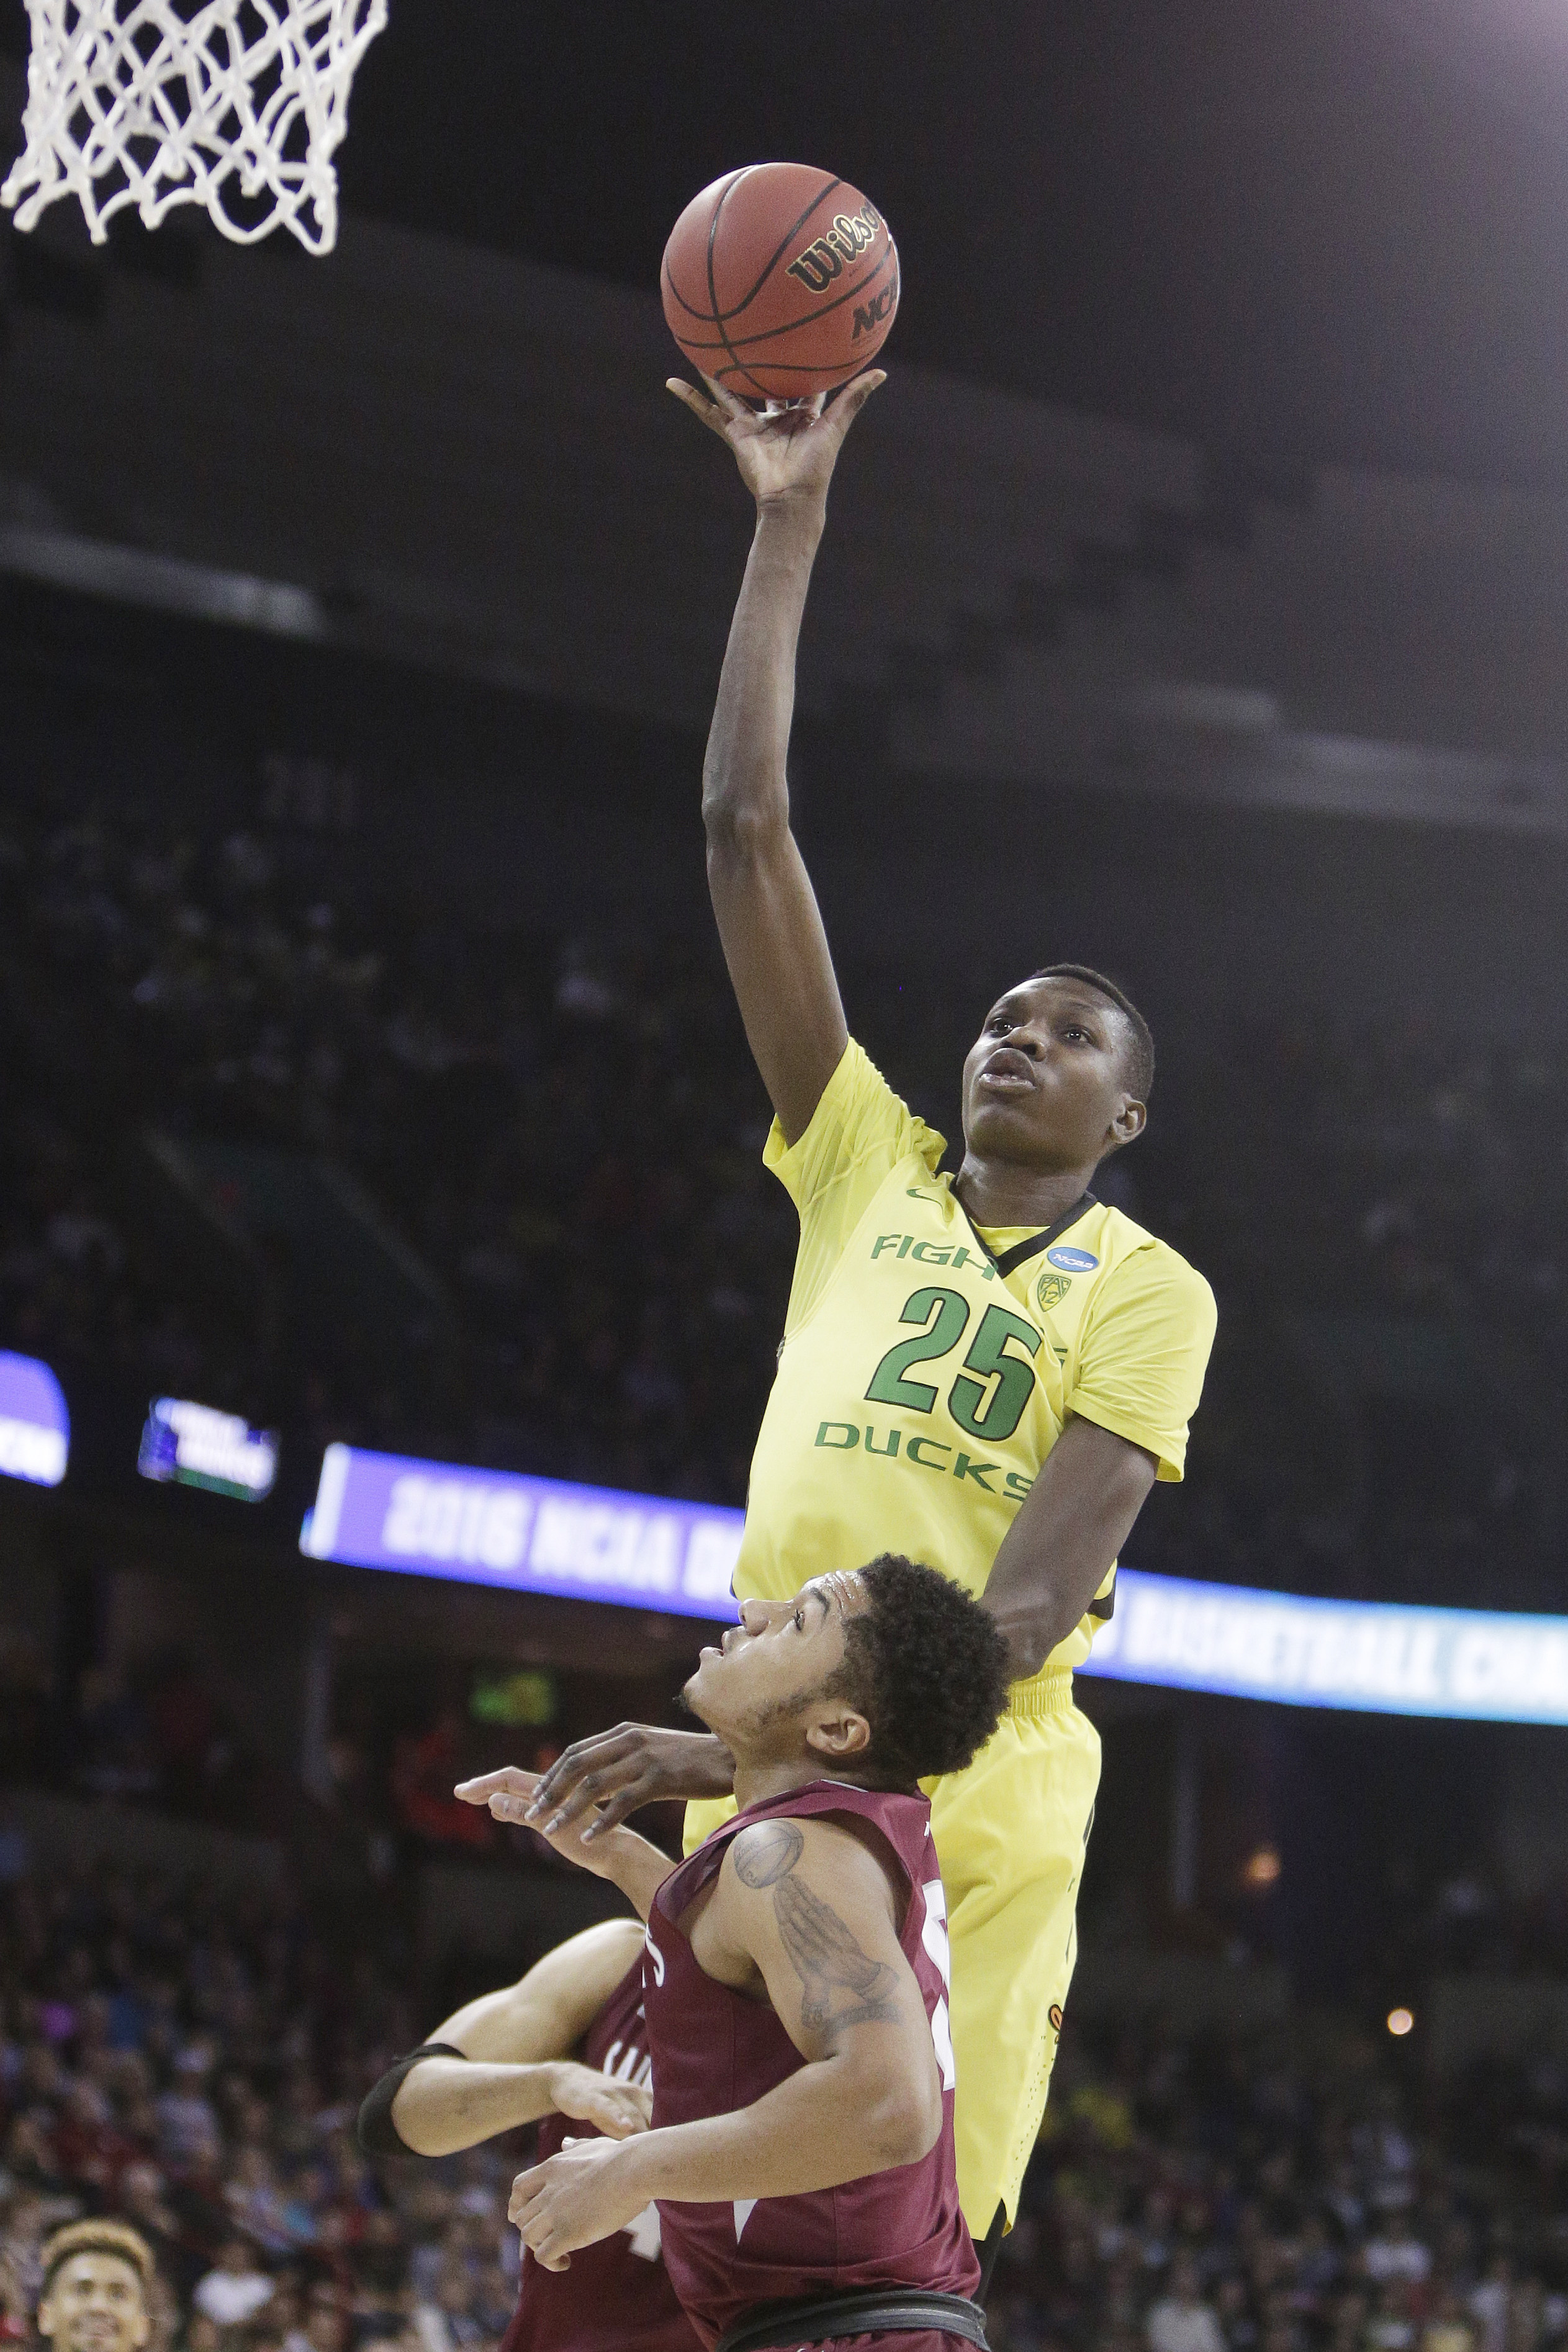 Oregon forward Chris Boucher (25) shoots against Saint Joseph's guard Lamarr Kimble during the first half of a second-round men's college basketball game in the NCAA Tournament in Spokane, Wash., Sunday, March 20, 2016. (AP Photo/Young Kwak)